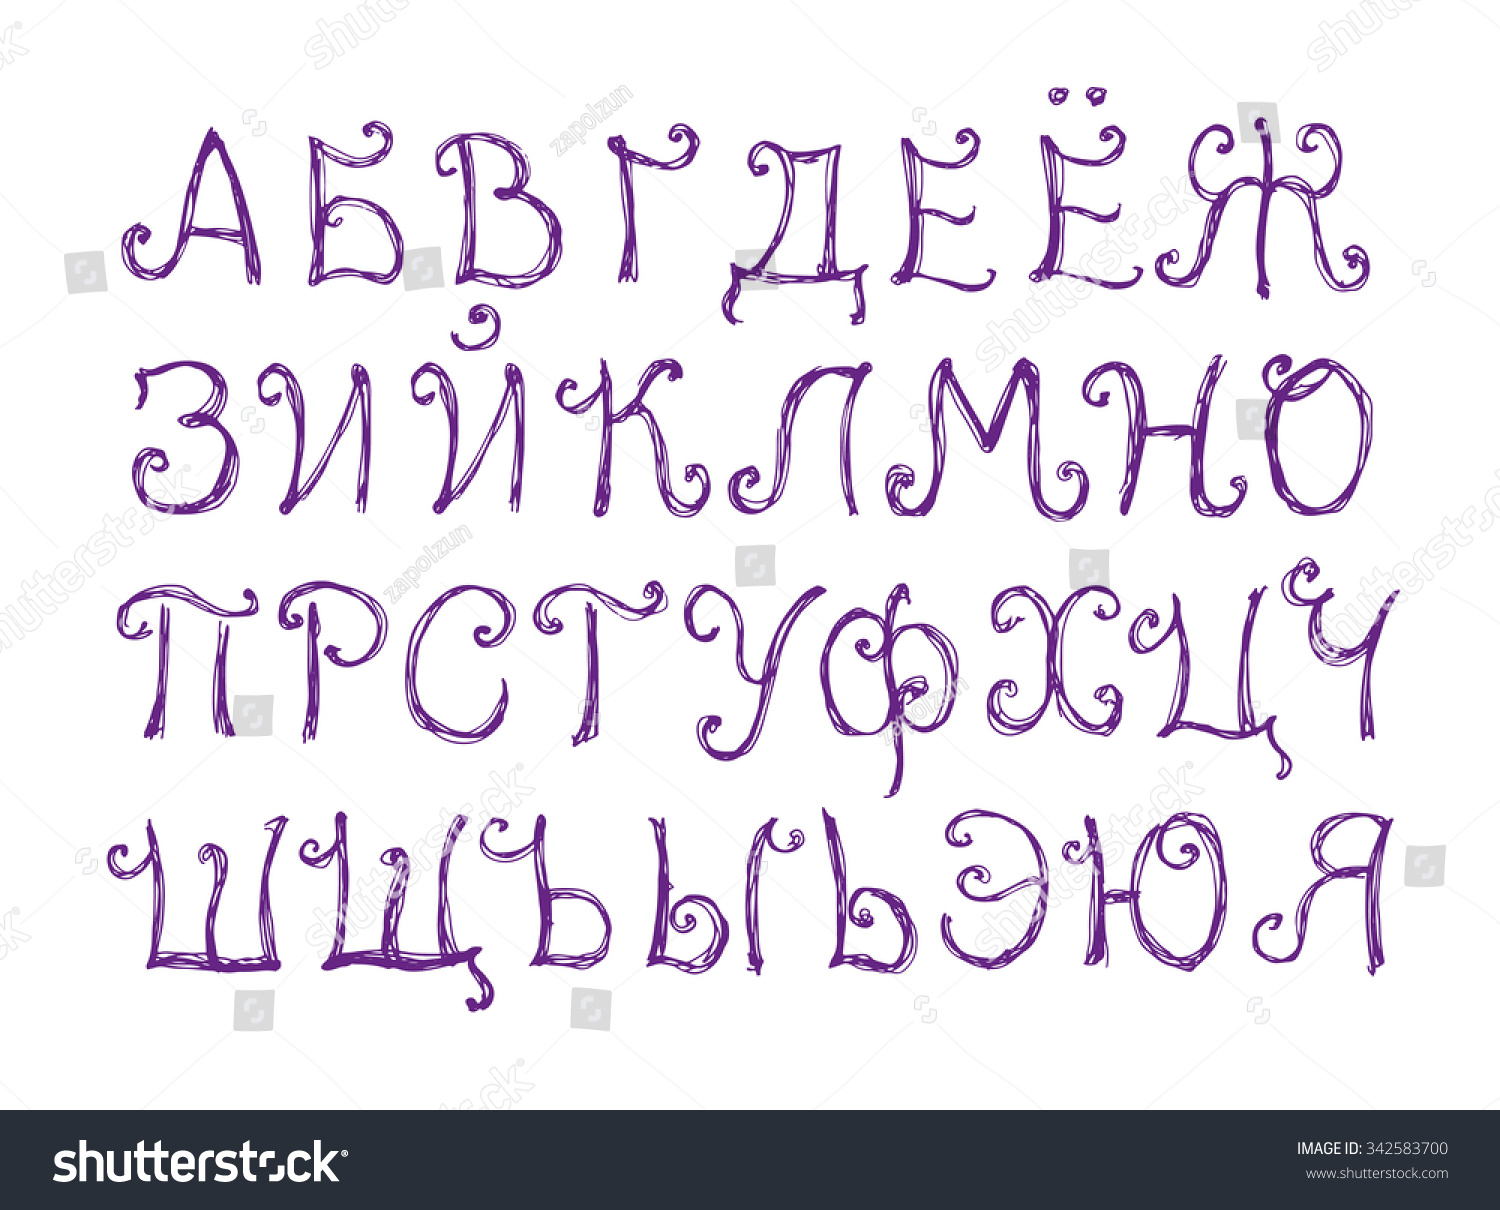 Funny Cyrillic Alphabet Sketch Style Russian Stock Vector 342583700 - Shutterstock